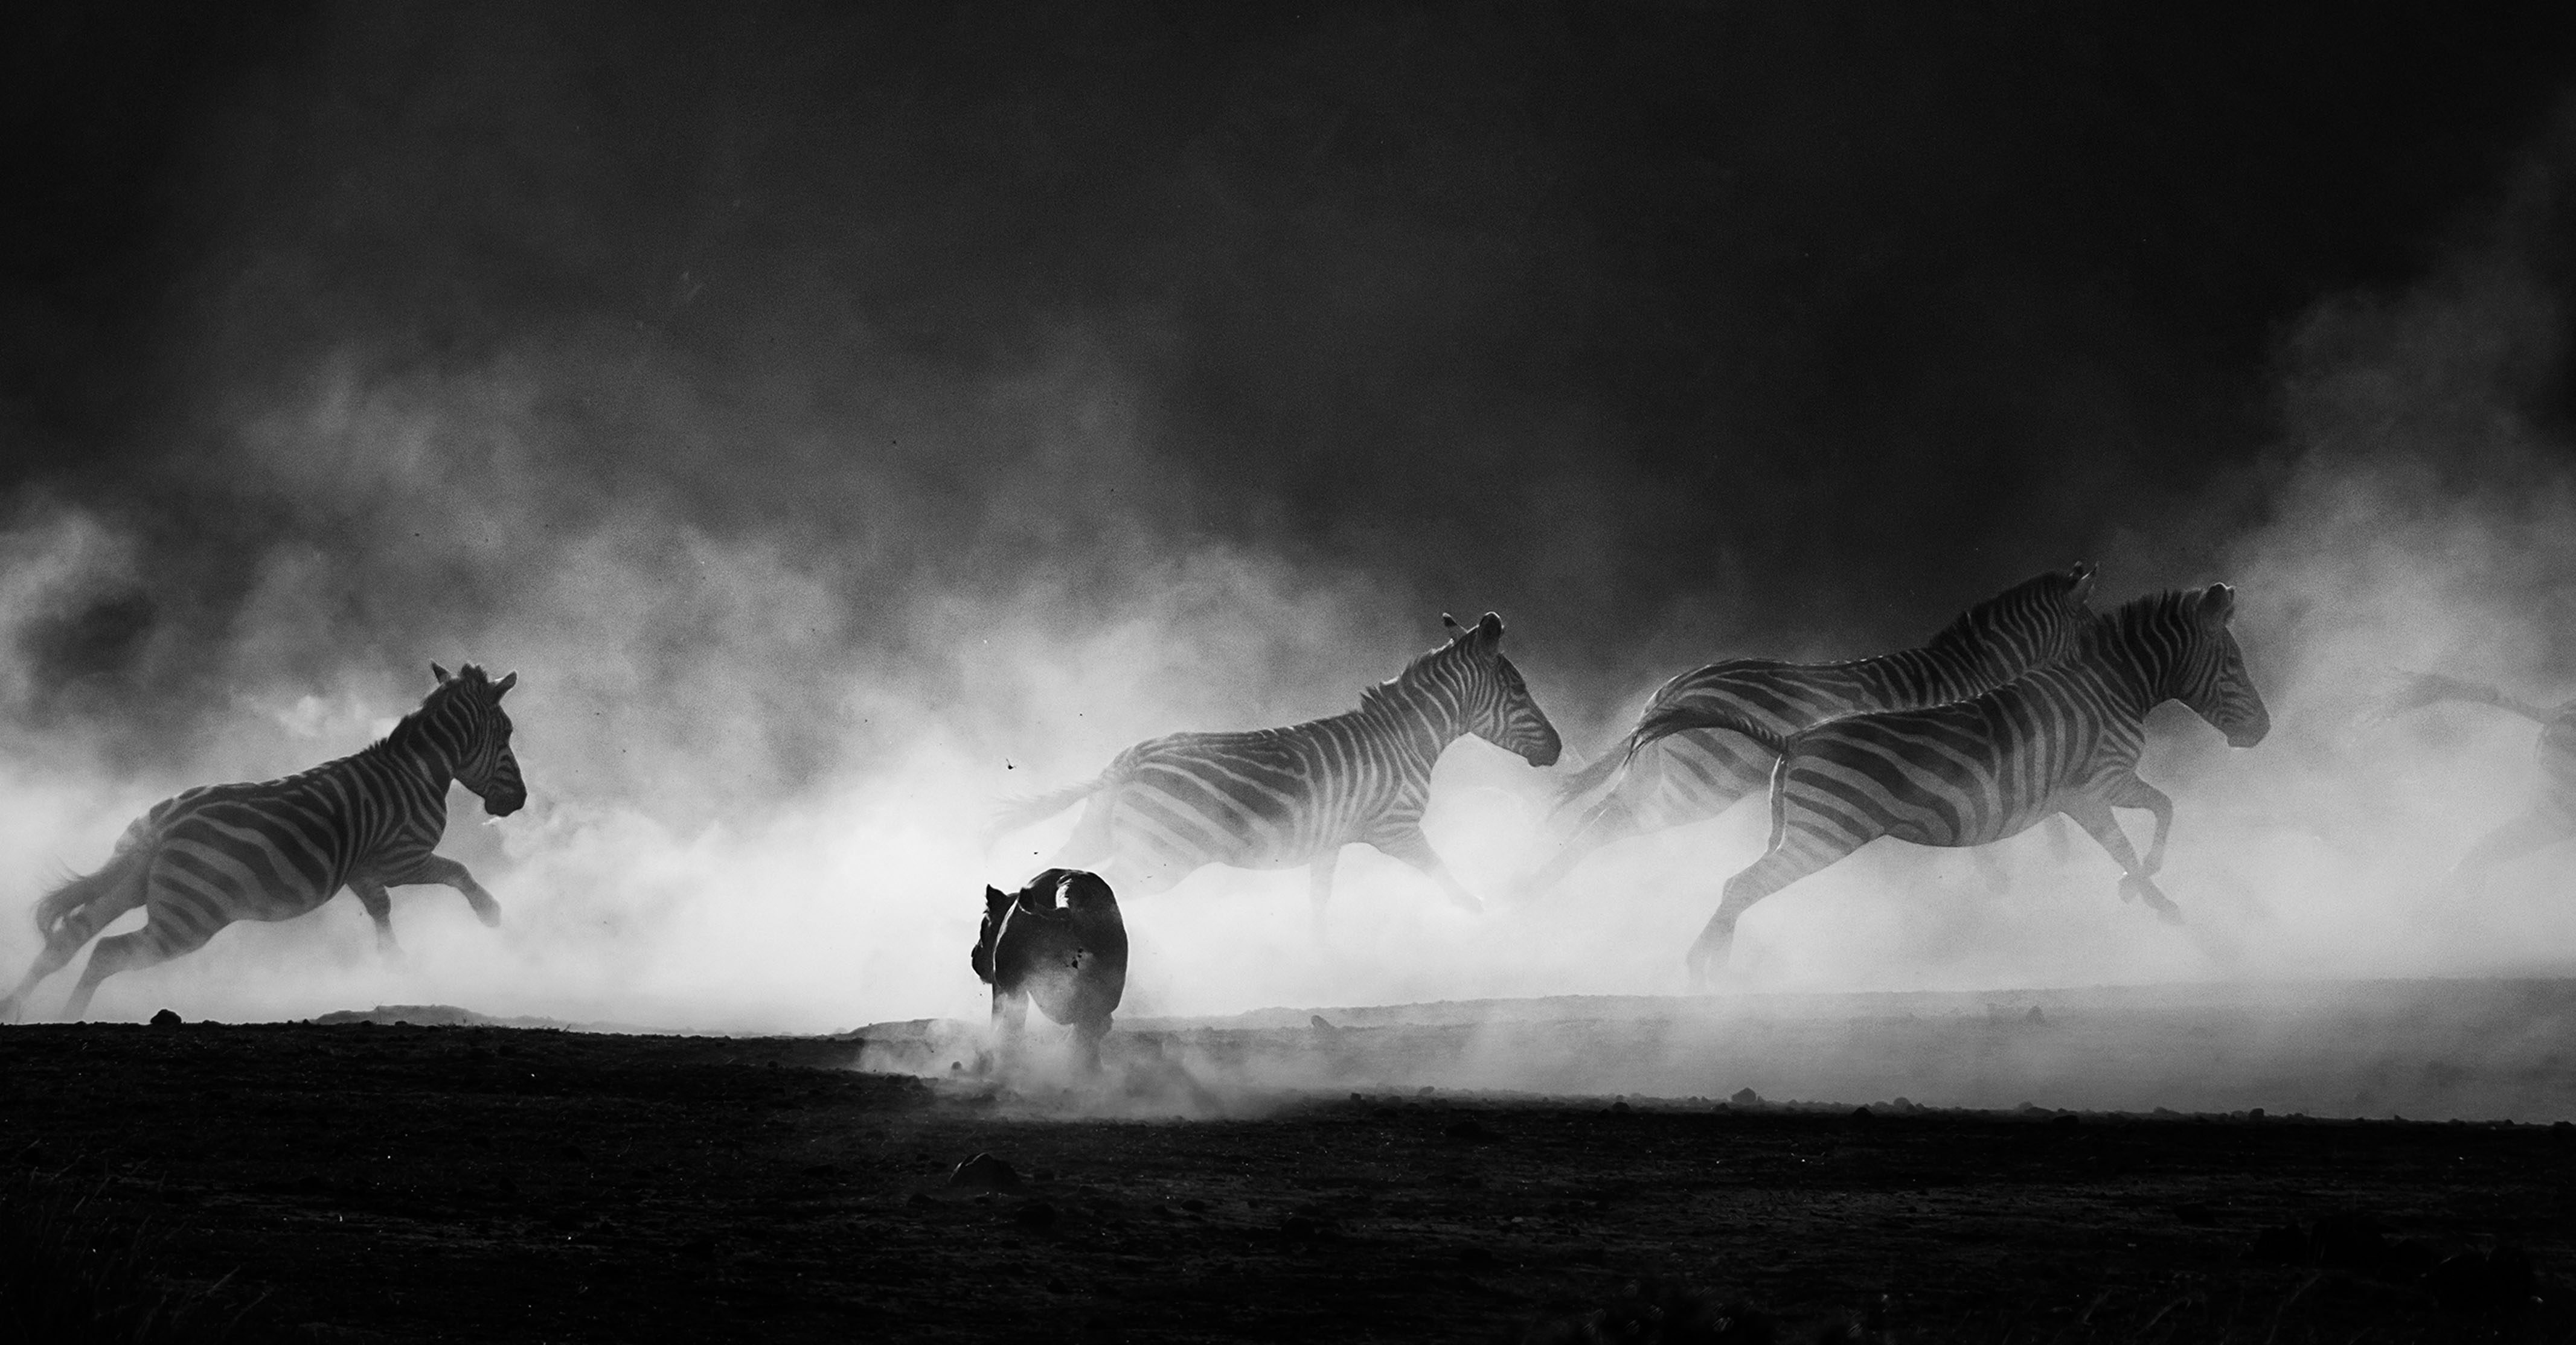 Lioness hunts zebras as a cloud of dust rises at sunset as captured by Clement Kiragu on a 2018 photo safari